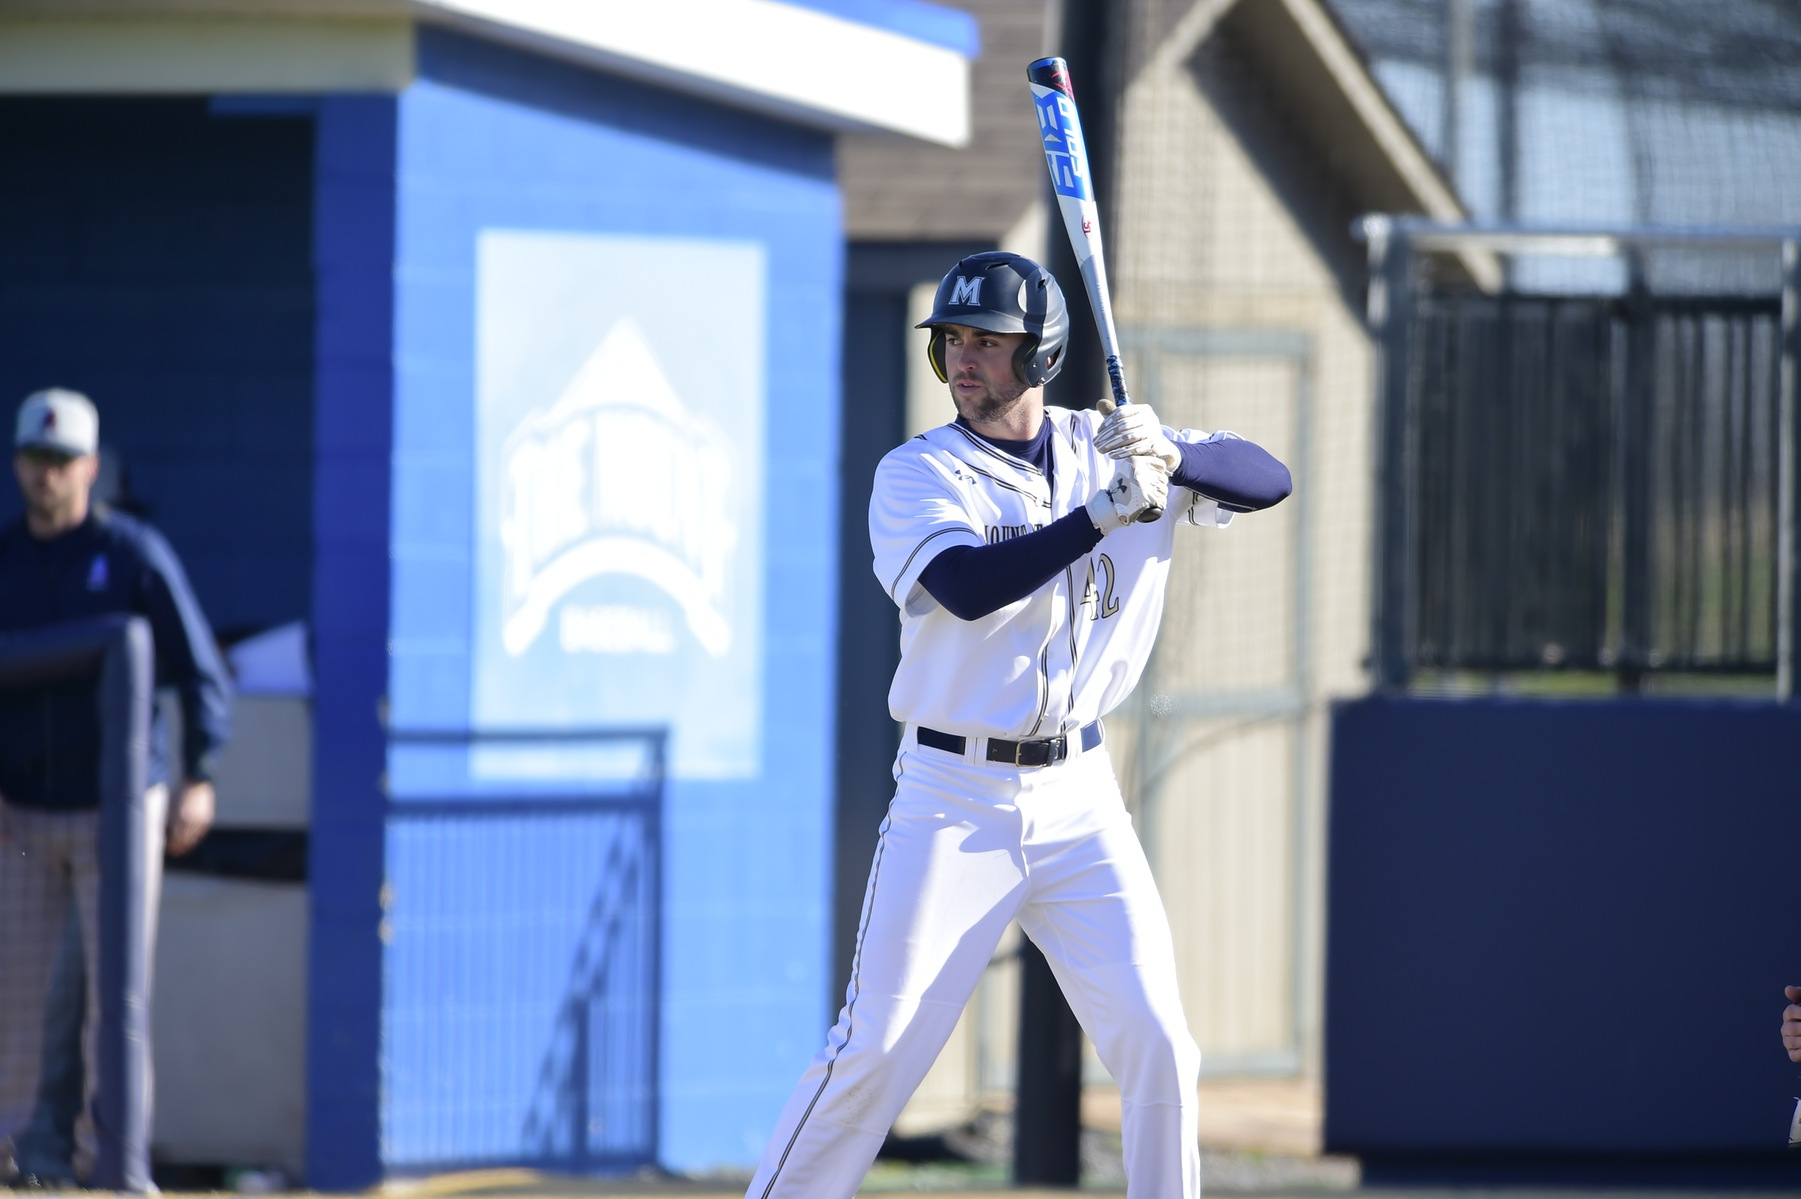 Mount St. Mary's Baseball Blanked By Florida State In Series Finale On Sunday